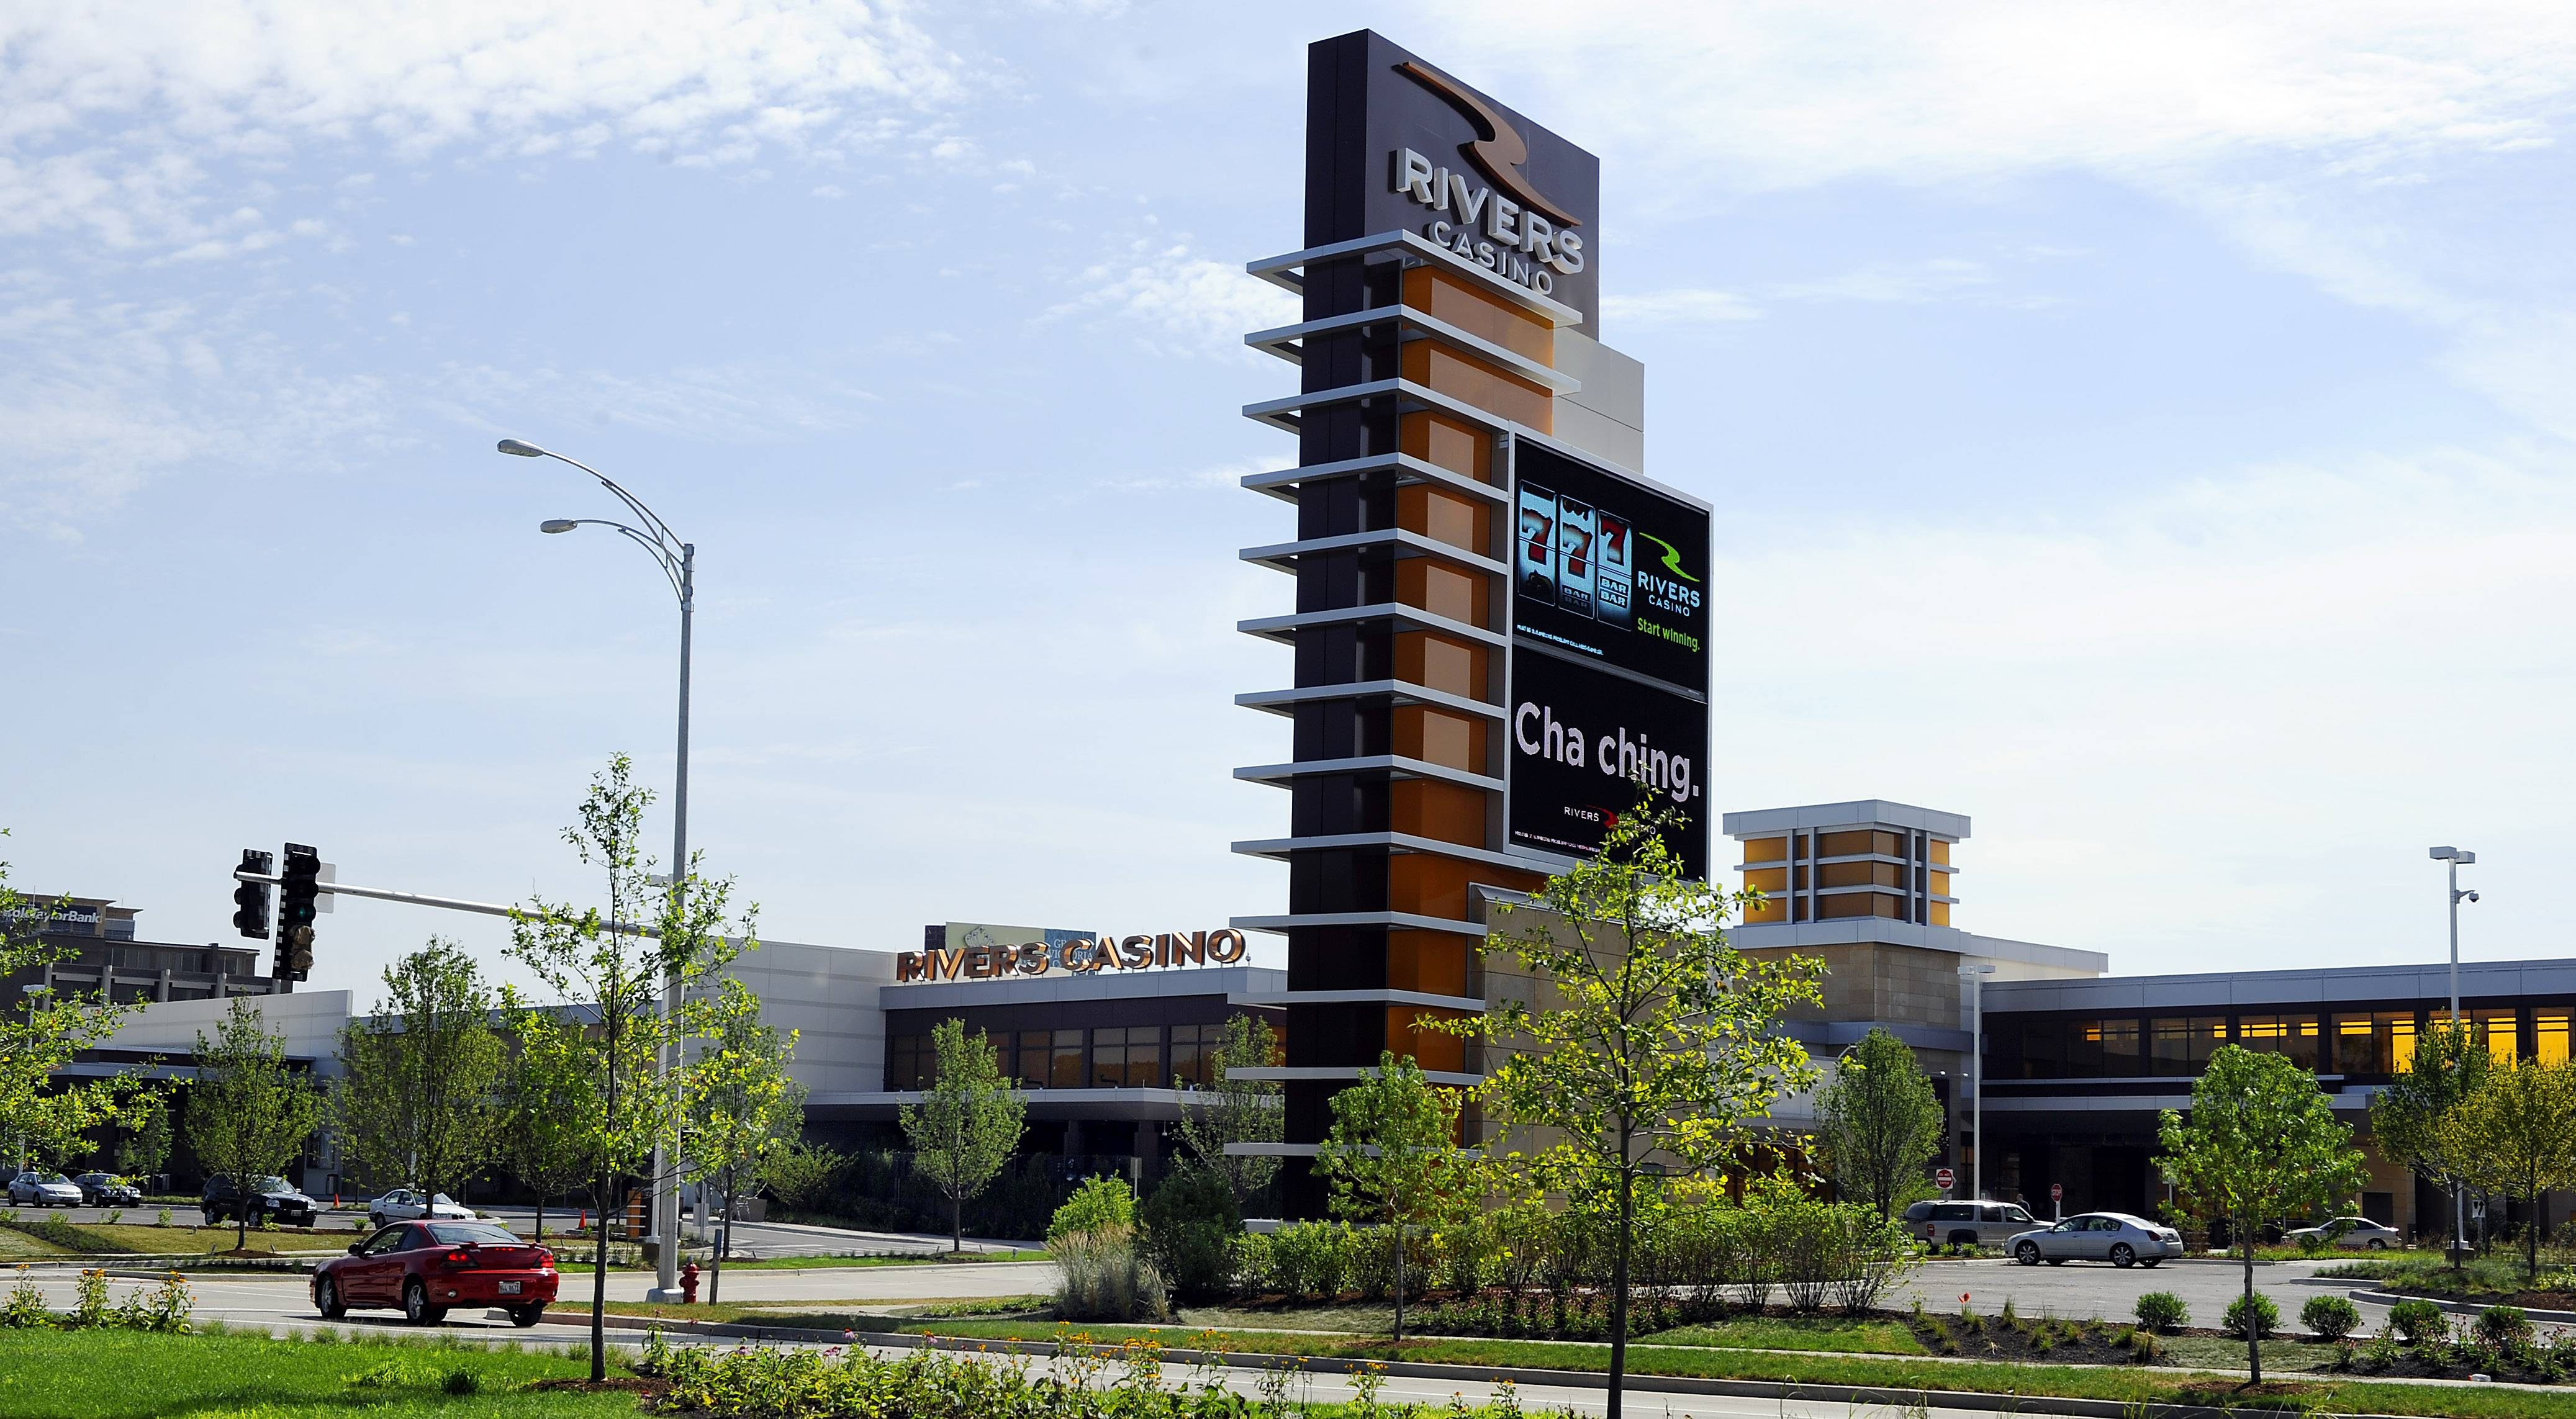 Officials at Rivers Casino in Des Plaines must post an employee notice saying that workers won't be threatened if they seek to join a union, according to terms of settlement reached late last month resolving unfair labor practice complaints against casino management.